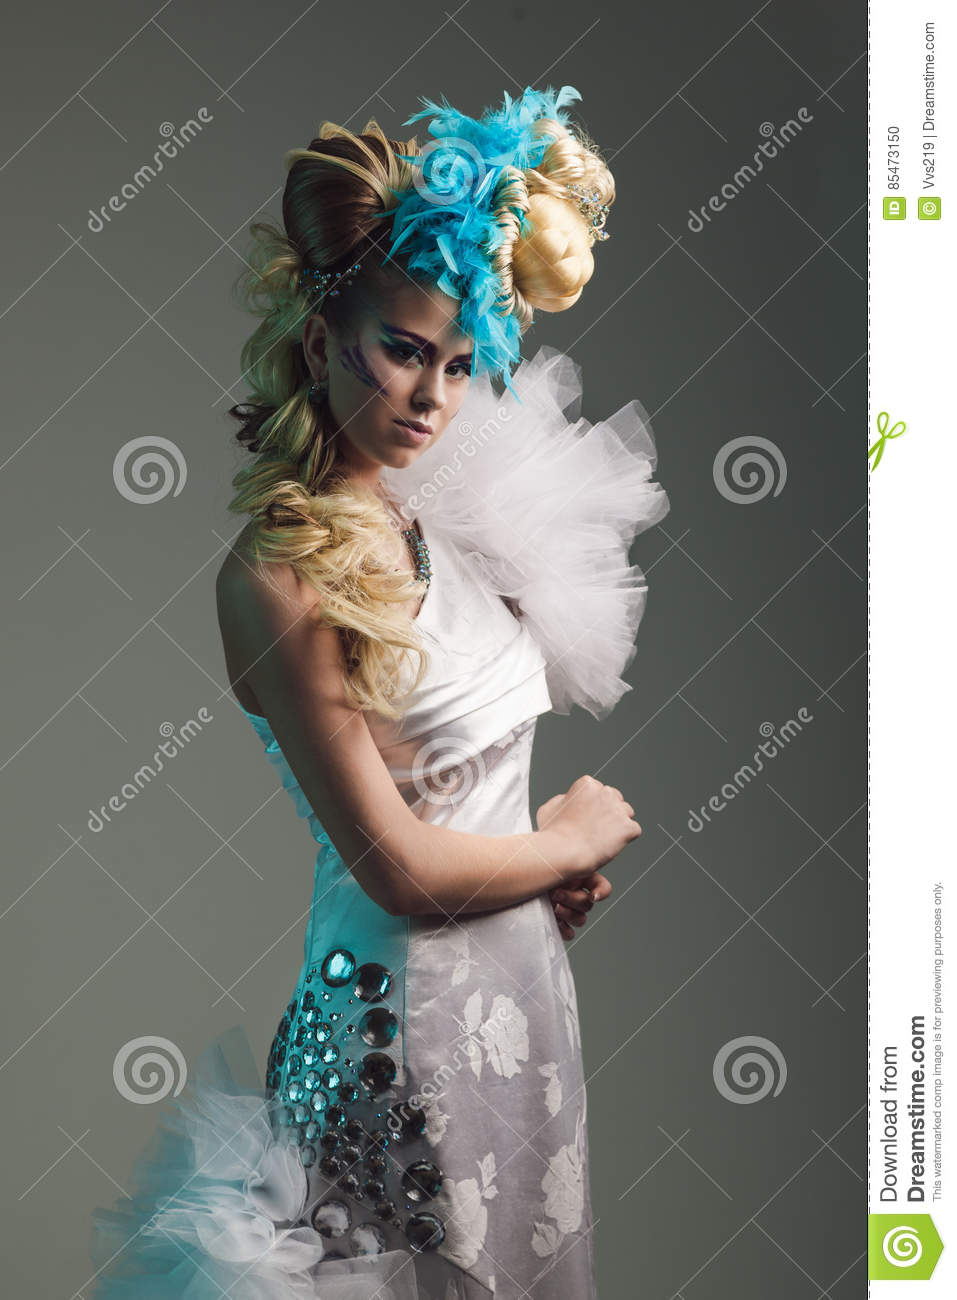 Studio shoot of woman with creative hairstyle, makeup and dress.